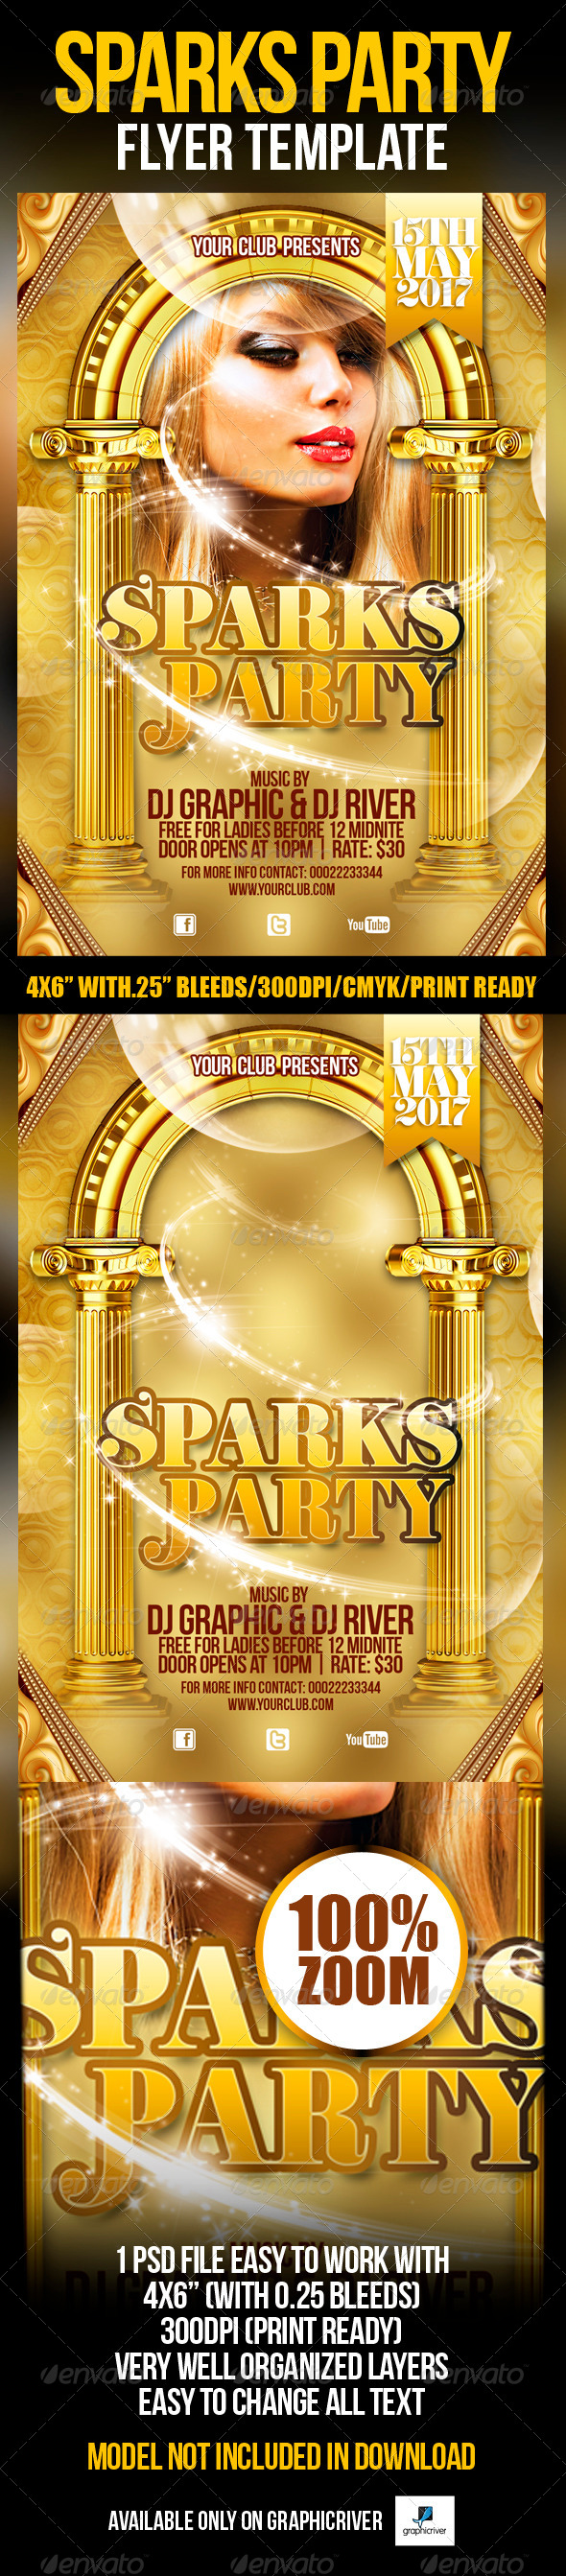 Sparks Party Flyer Template - Clubs & Parties Events